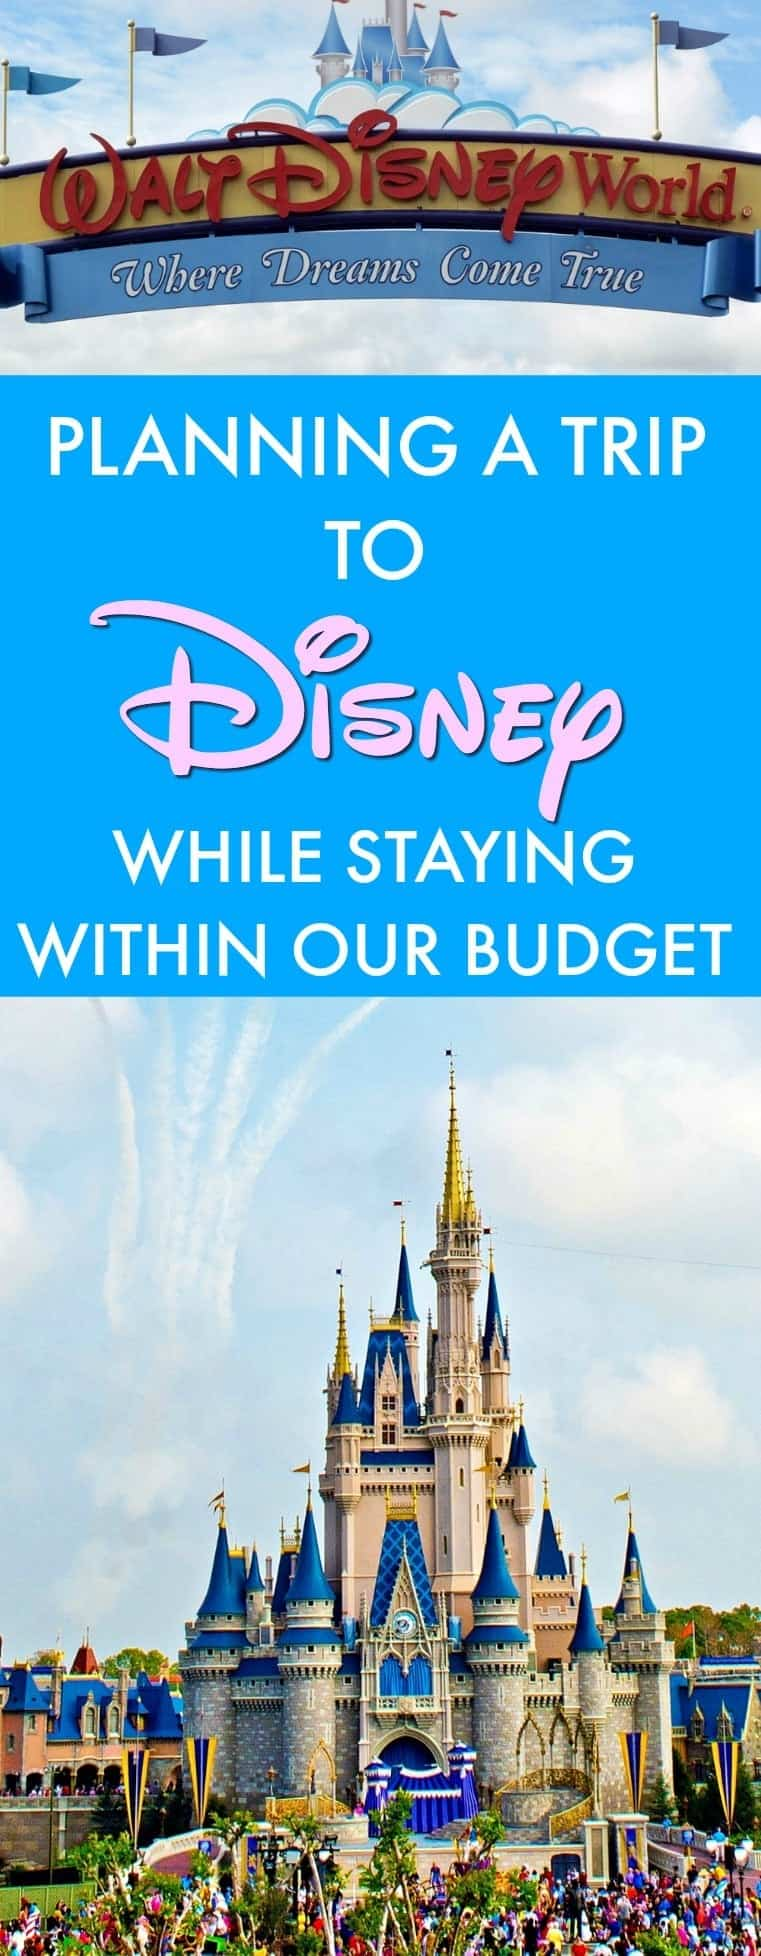 Booking a Trip to Disney World While Staying Within our Budget